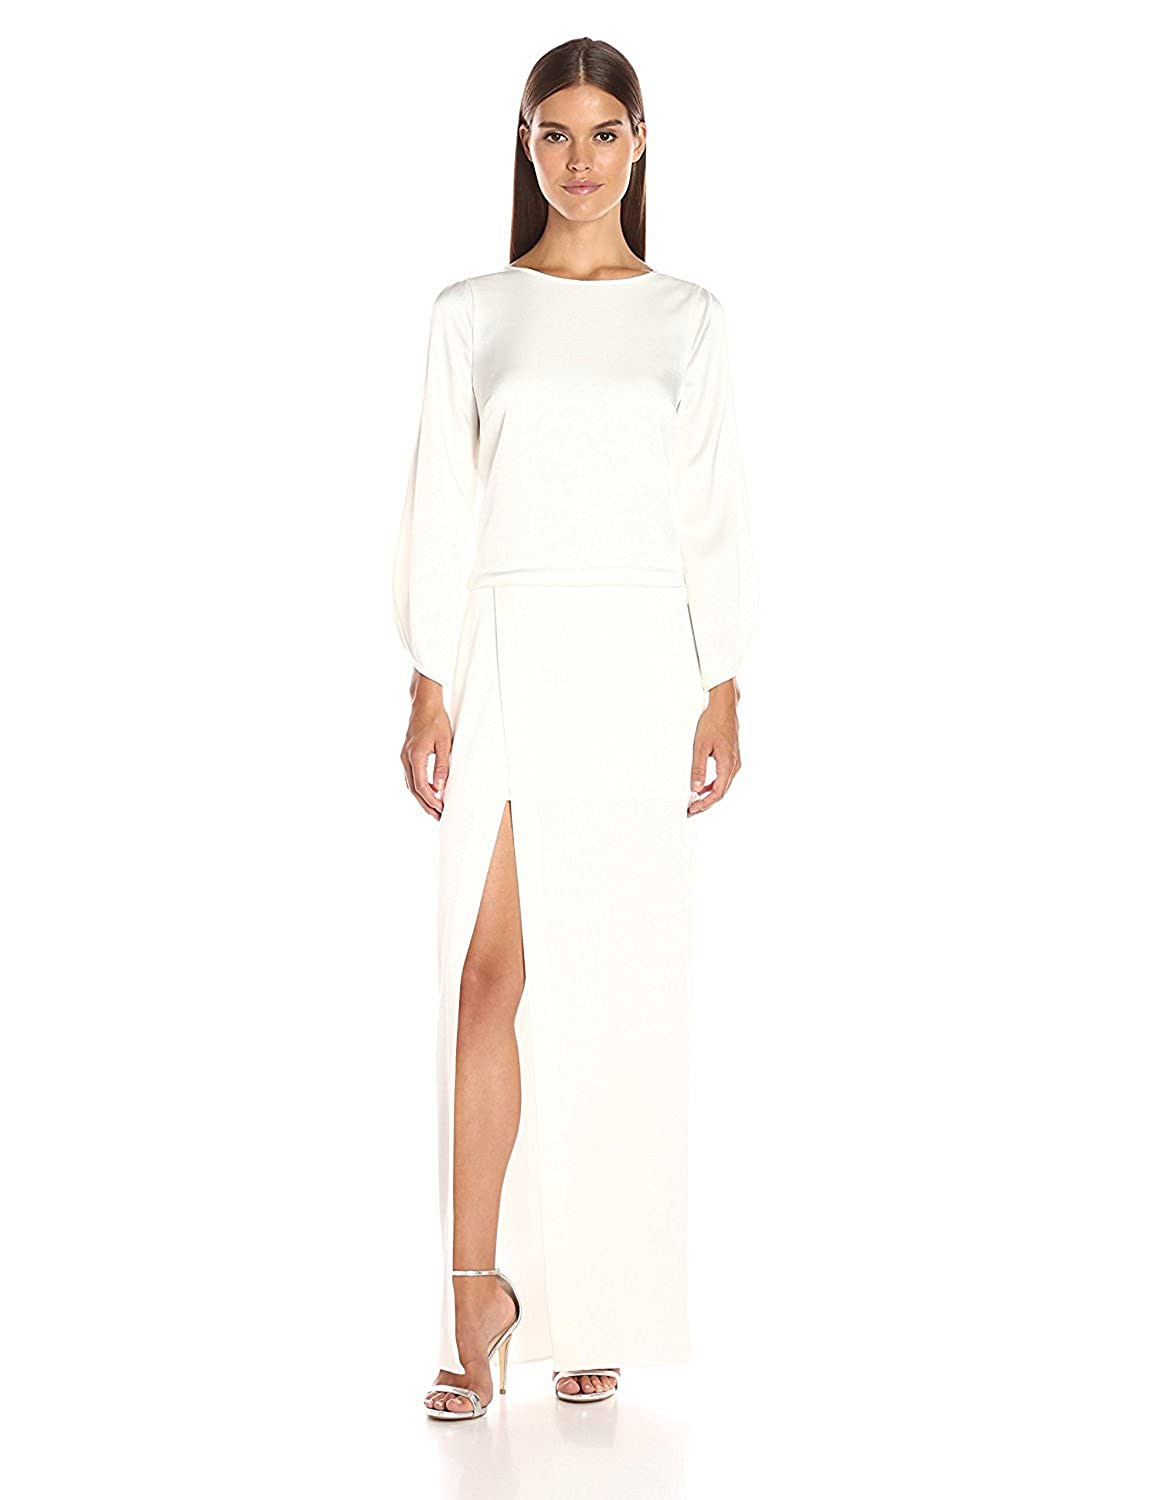 HALSTON HERITAGE Women's Longsleeve Boatneck Gown with High Slit Winter White 6 [並行輸入品] B075CCYMQC